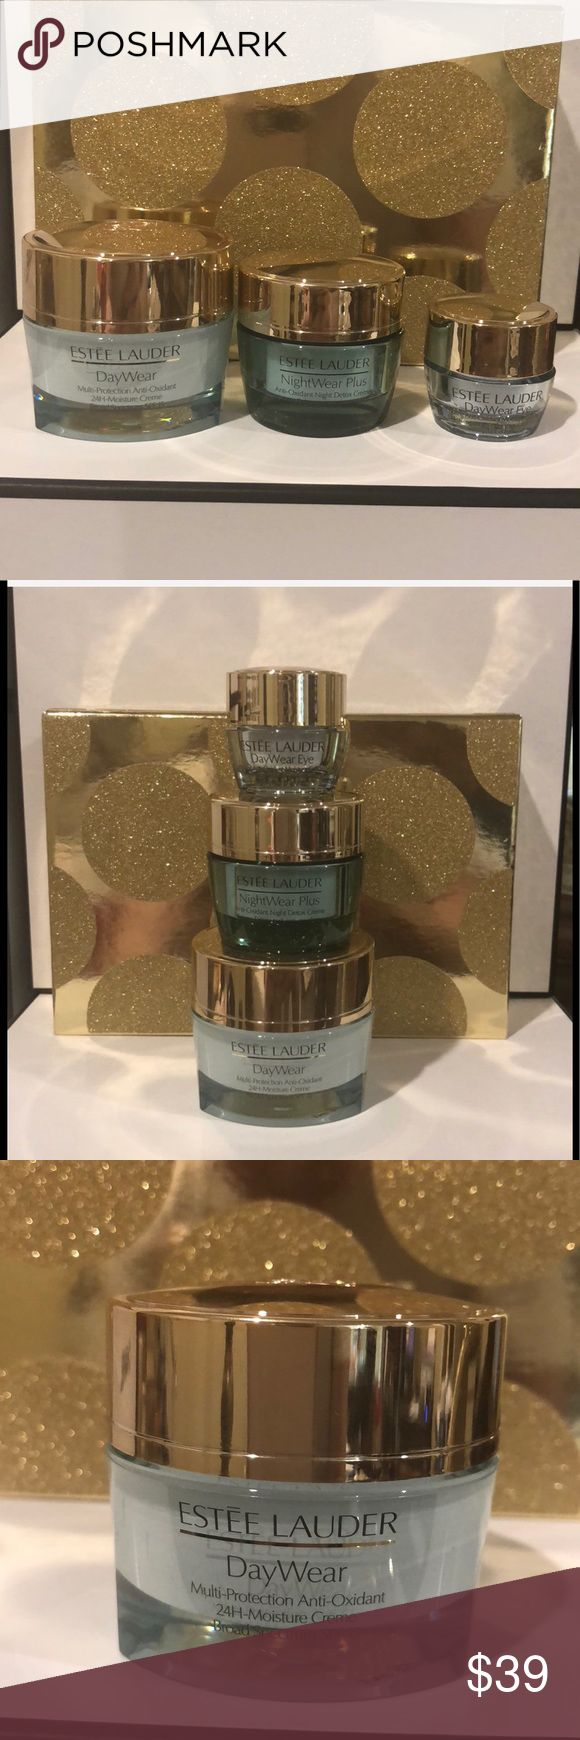 Estée Lauder DayWear Set This Awesome set includes: Full-size DayWear for Face 1FL OZ (30ml) NightWear for Face .5FL OZ (15ml) Daywear for Eye .17 FL OZ (5ml) All NEW & UNUSED. Thank you for shopping my closet I always give free gifts. Estee Lauder Makeup